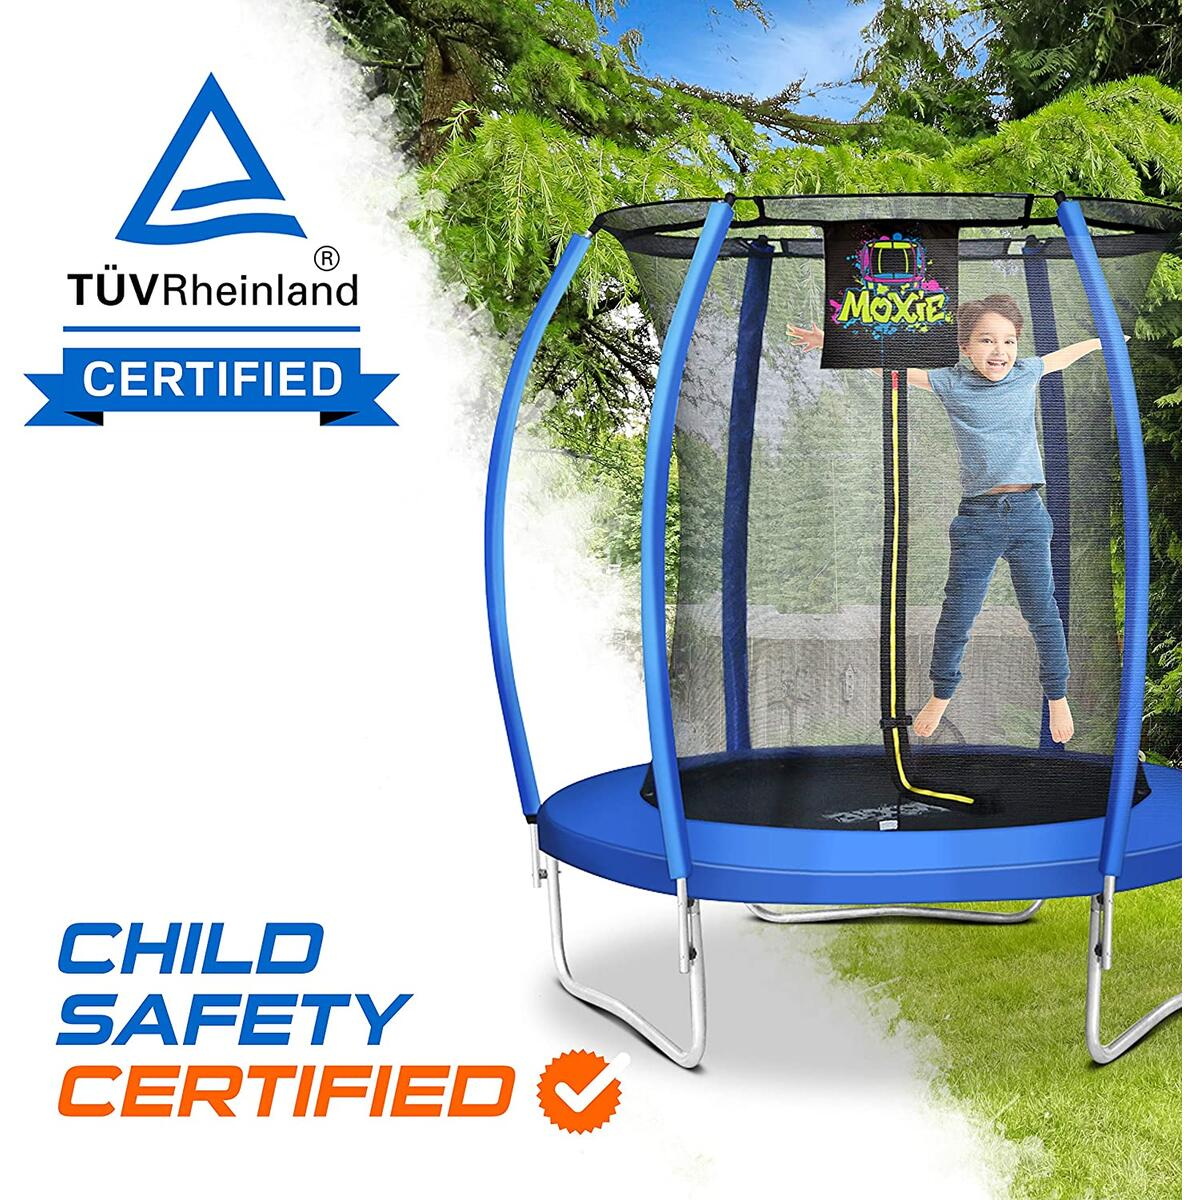 6 Foot - Orange or Blue - Outdoor Heights Bubble-Shaped Outdoor Trampoline Set with Secured top Ring Safety Enclosure & Bonus 3 Step Ladder